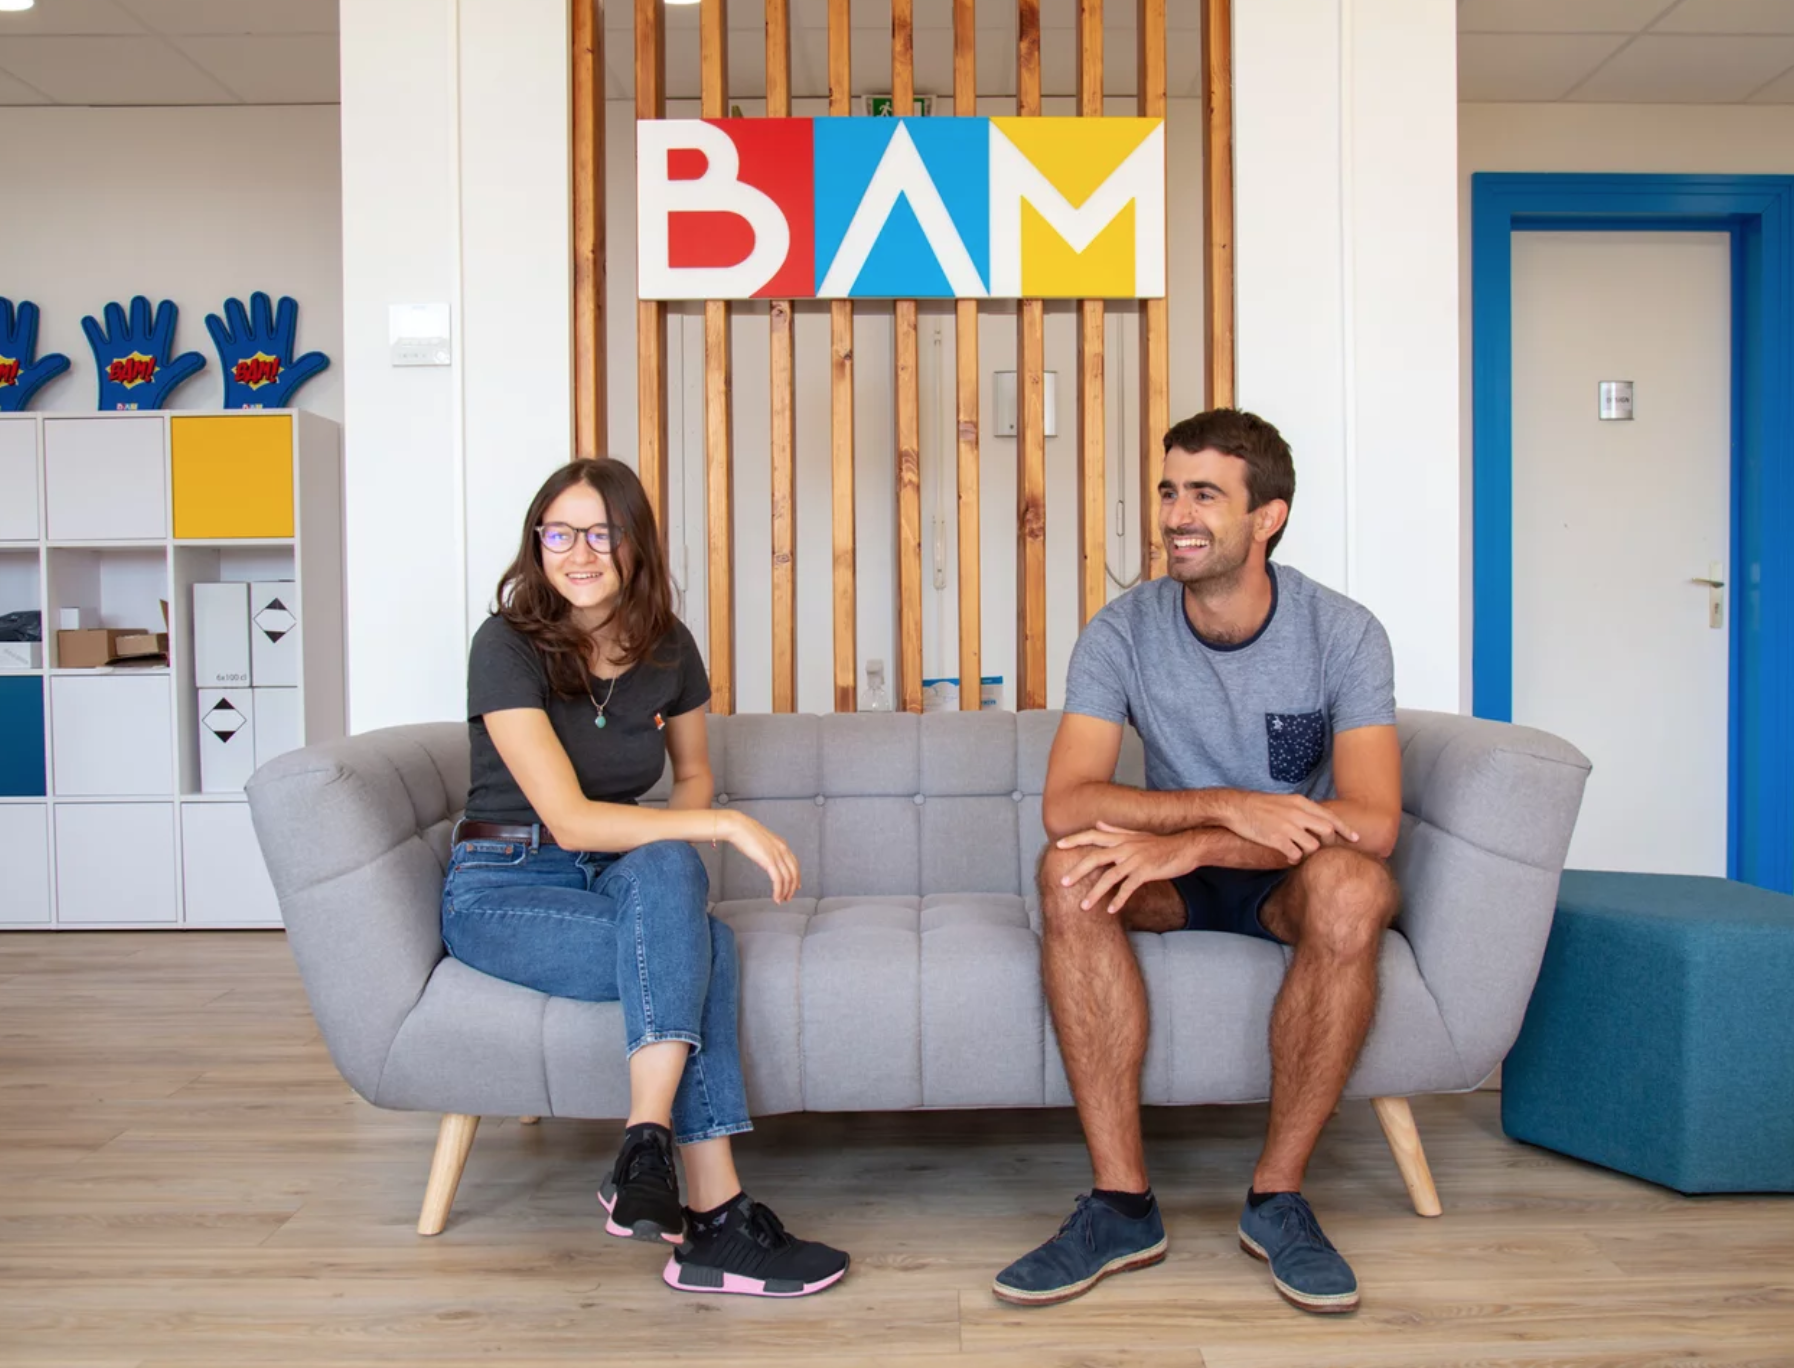 BAM – founded in 2015